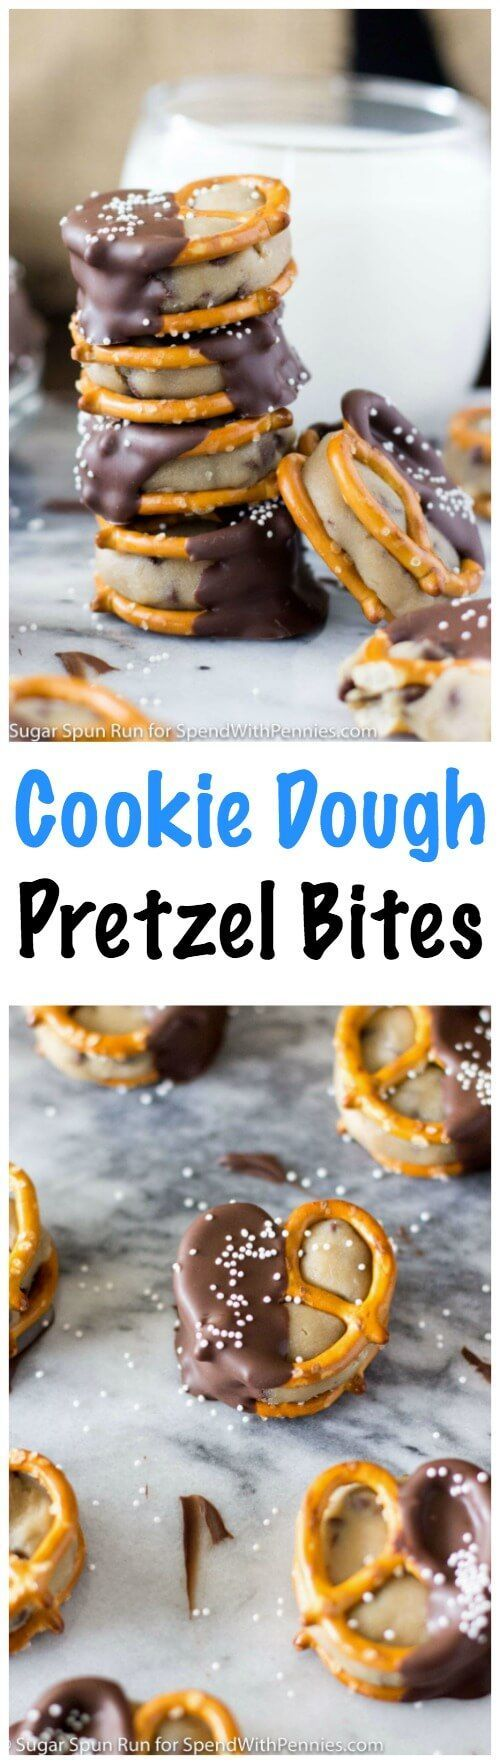 Easy Cookie Dough Pretzel Bites -- What a perfect sweet & salty combo! These amazing no bake treats are made with egg-free cookie dough and dipped in dark chocolate!